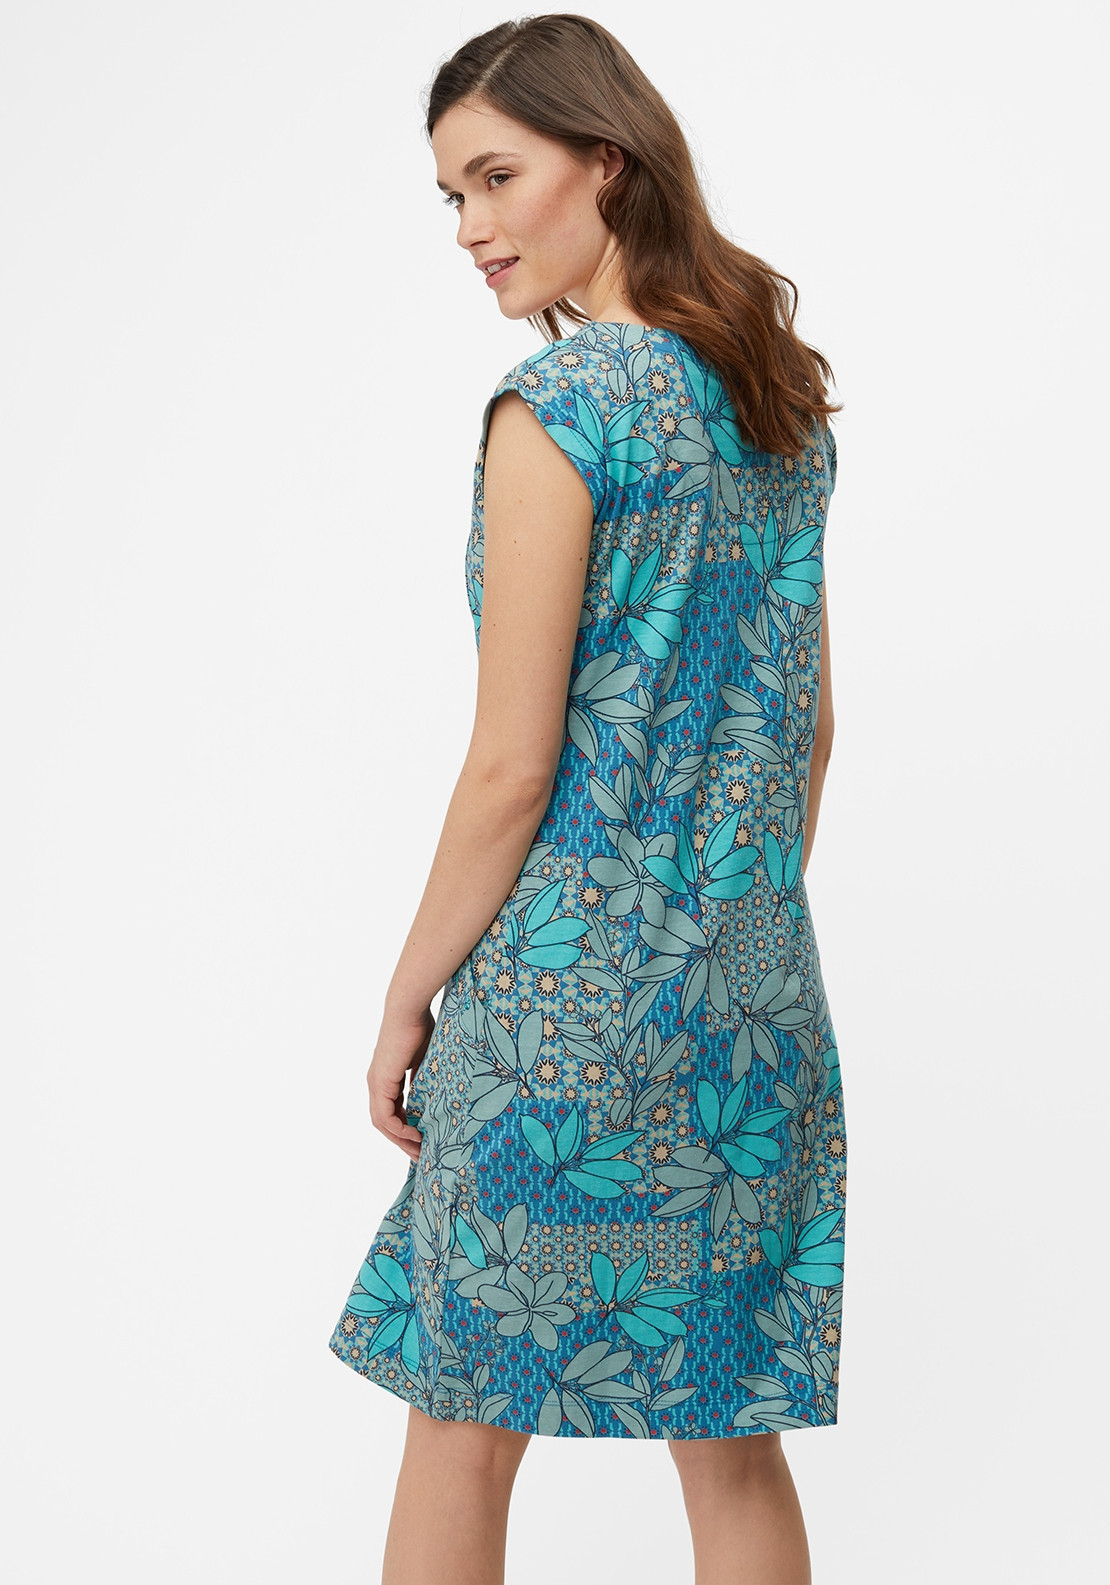 333978e0c1 White Stuff Lena Printed Jersey Dress, Teal Blue. Be the first to review  this product